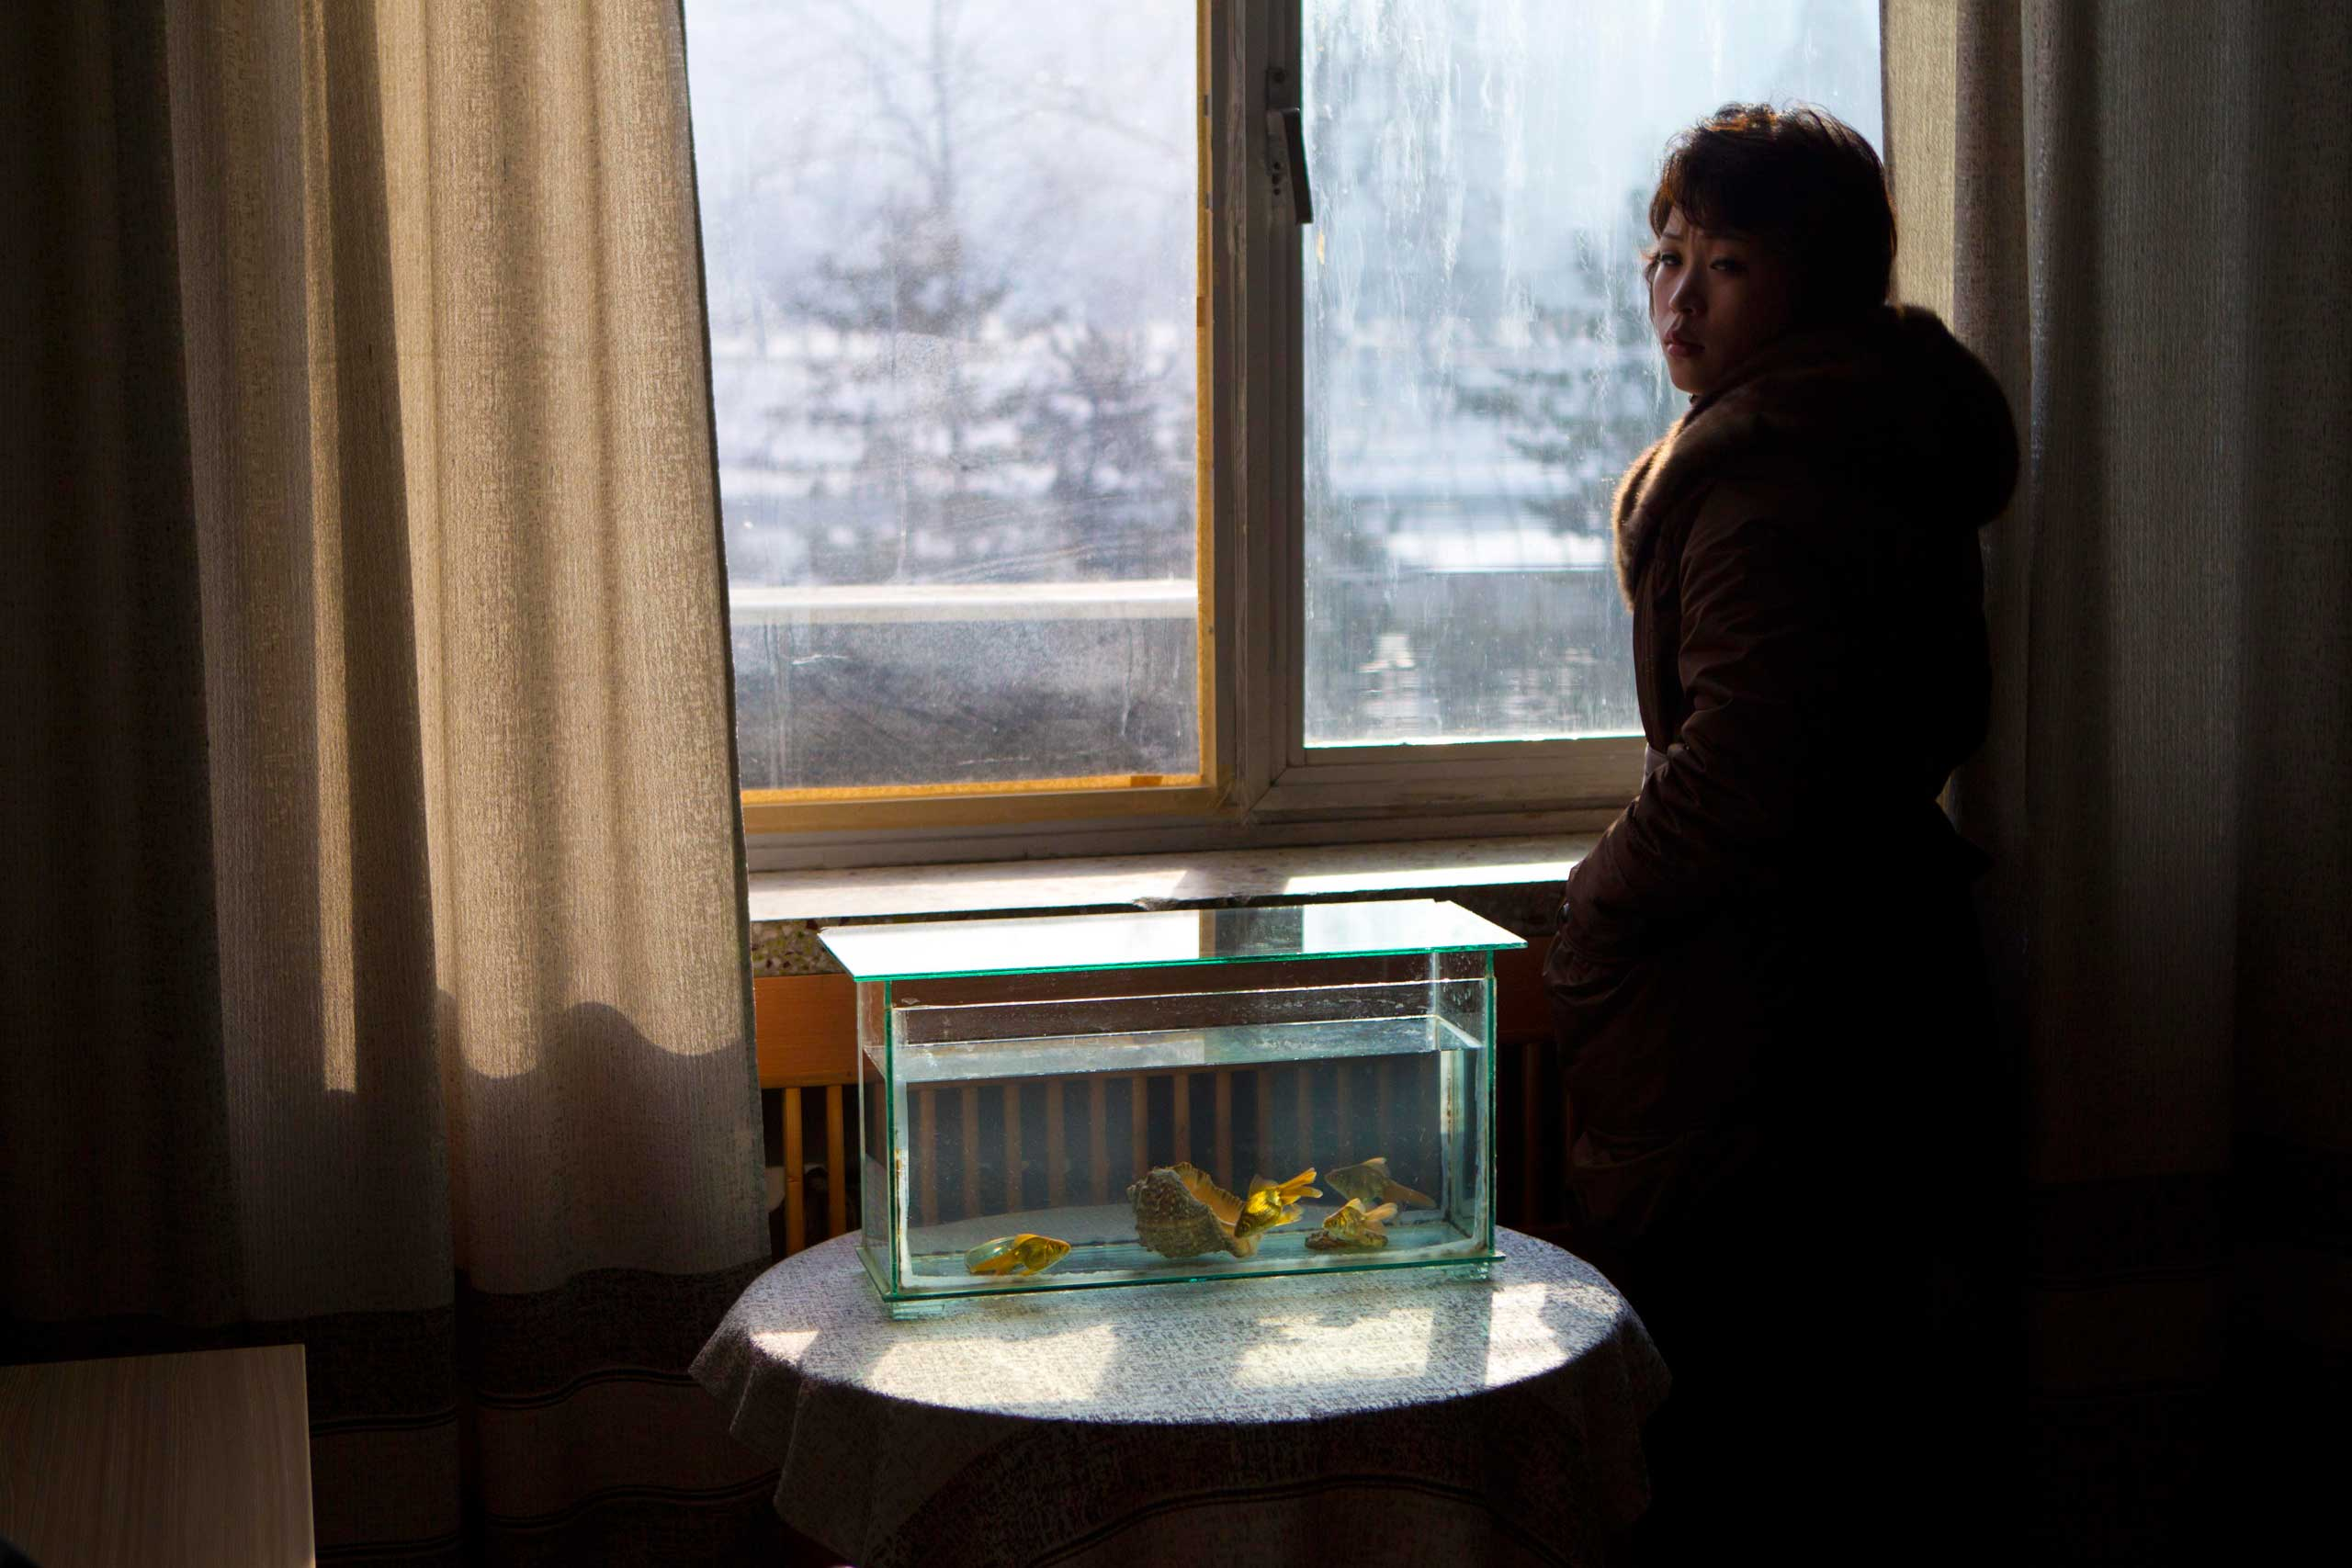 Jan. 16, 2012. Light shines through a window on to a tank filled with goldfish inside an office at the Korean Central News Agency building in Pyongyang.